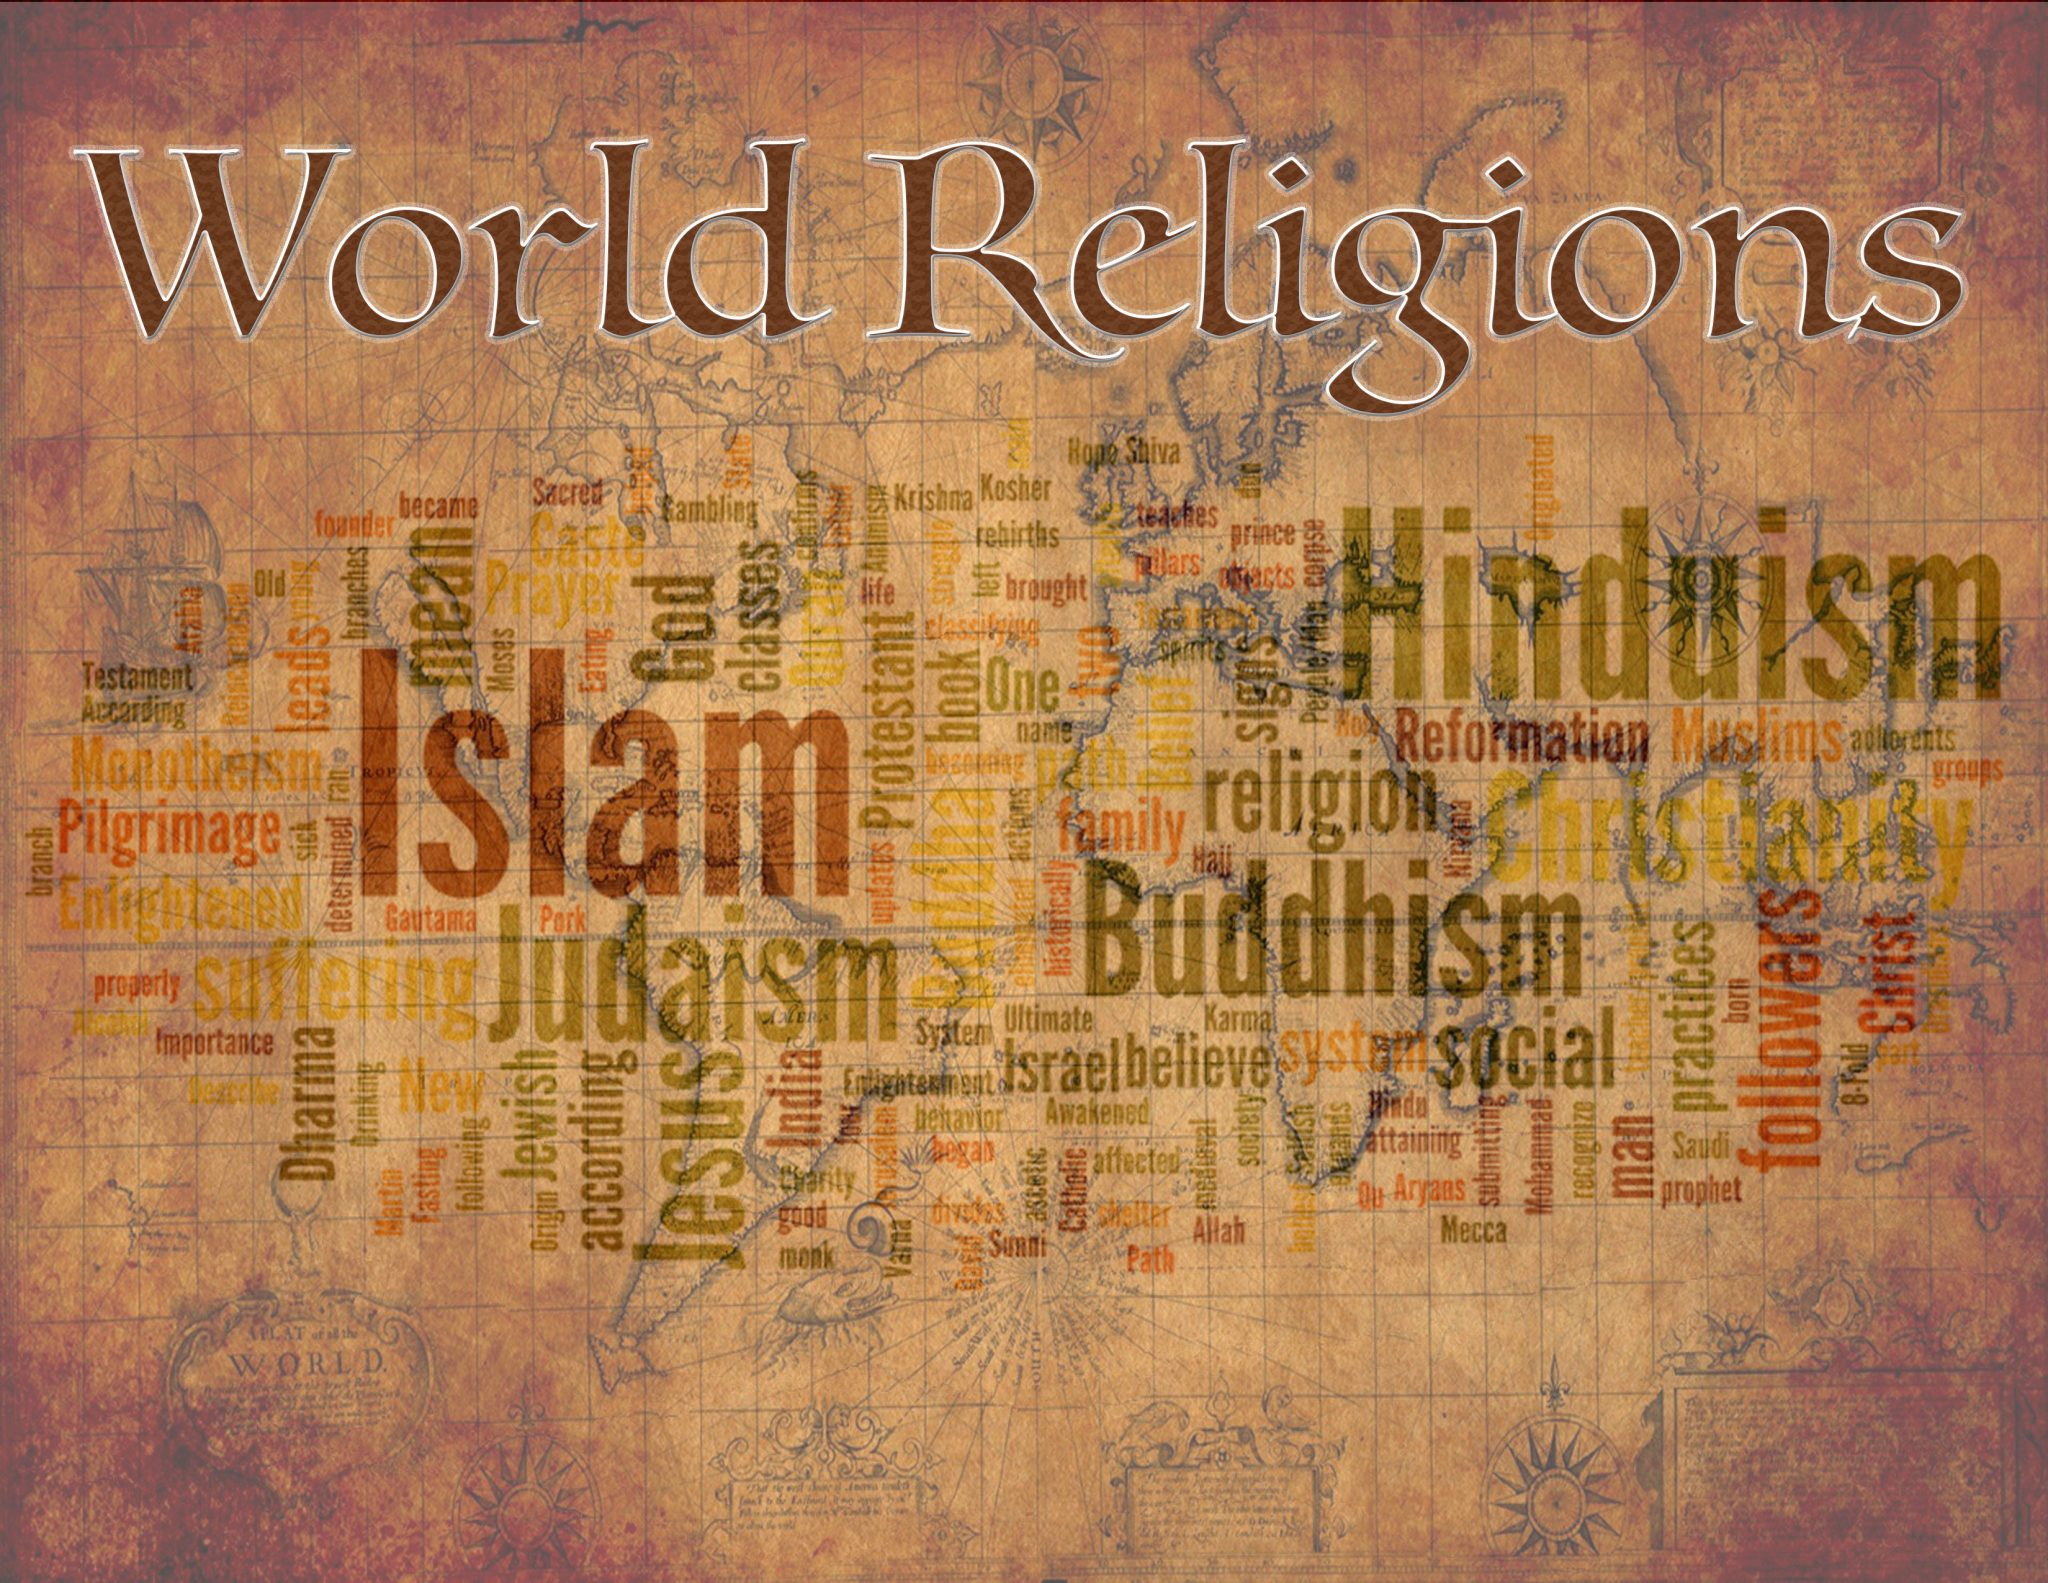 World Religions Slide